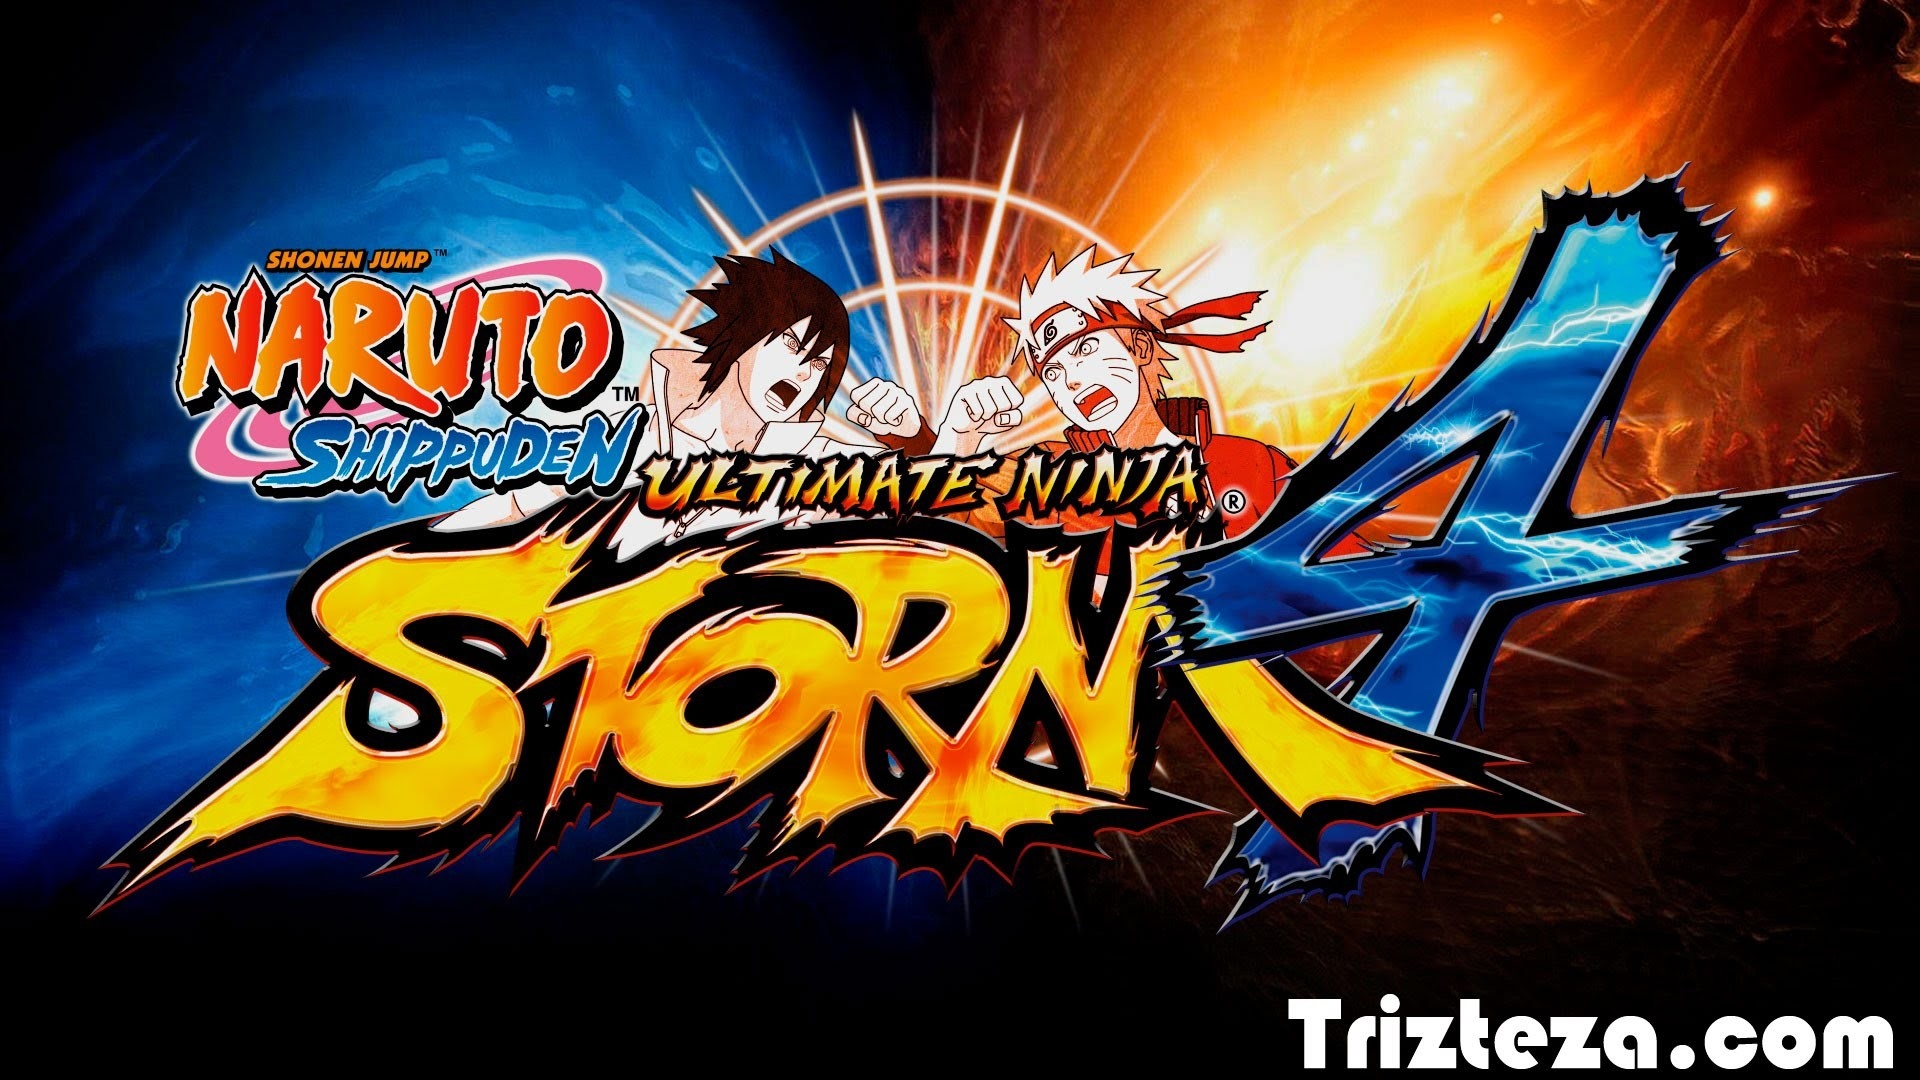 1920x1080 Naruto Vs Sasuke Luta Final - Naruto Ultimate Ninja Storm 4 PC